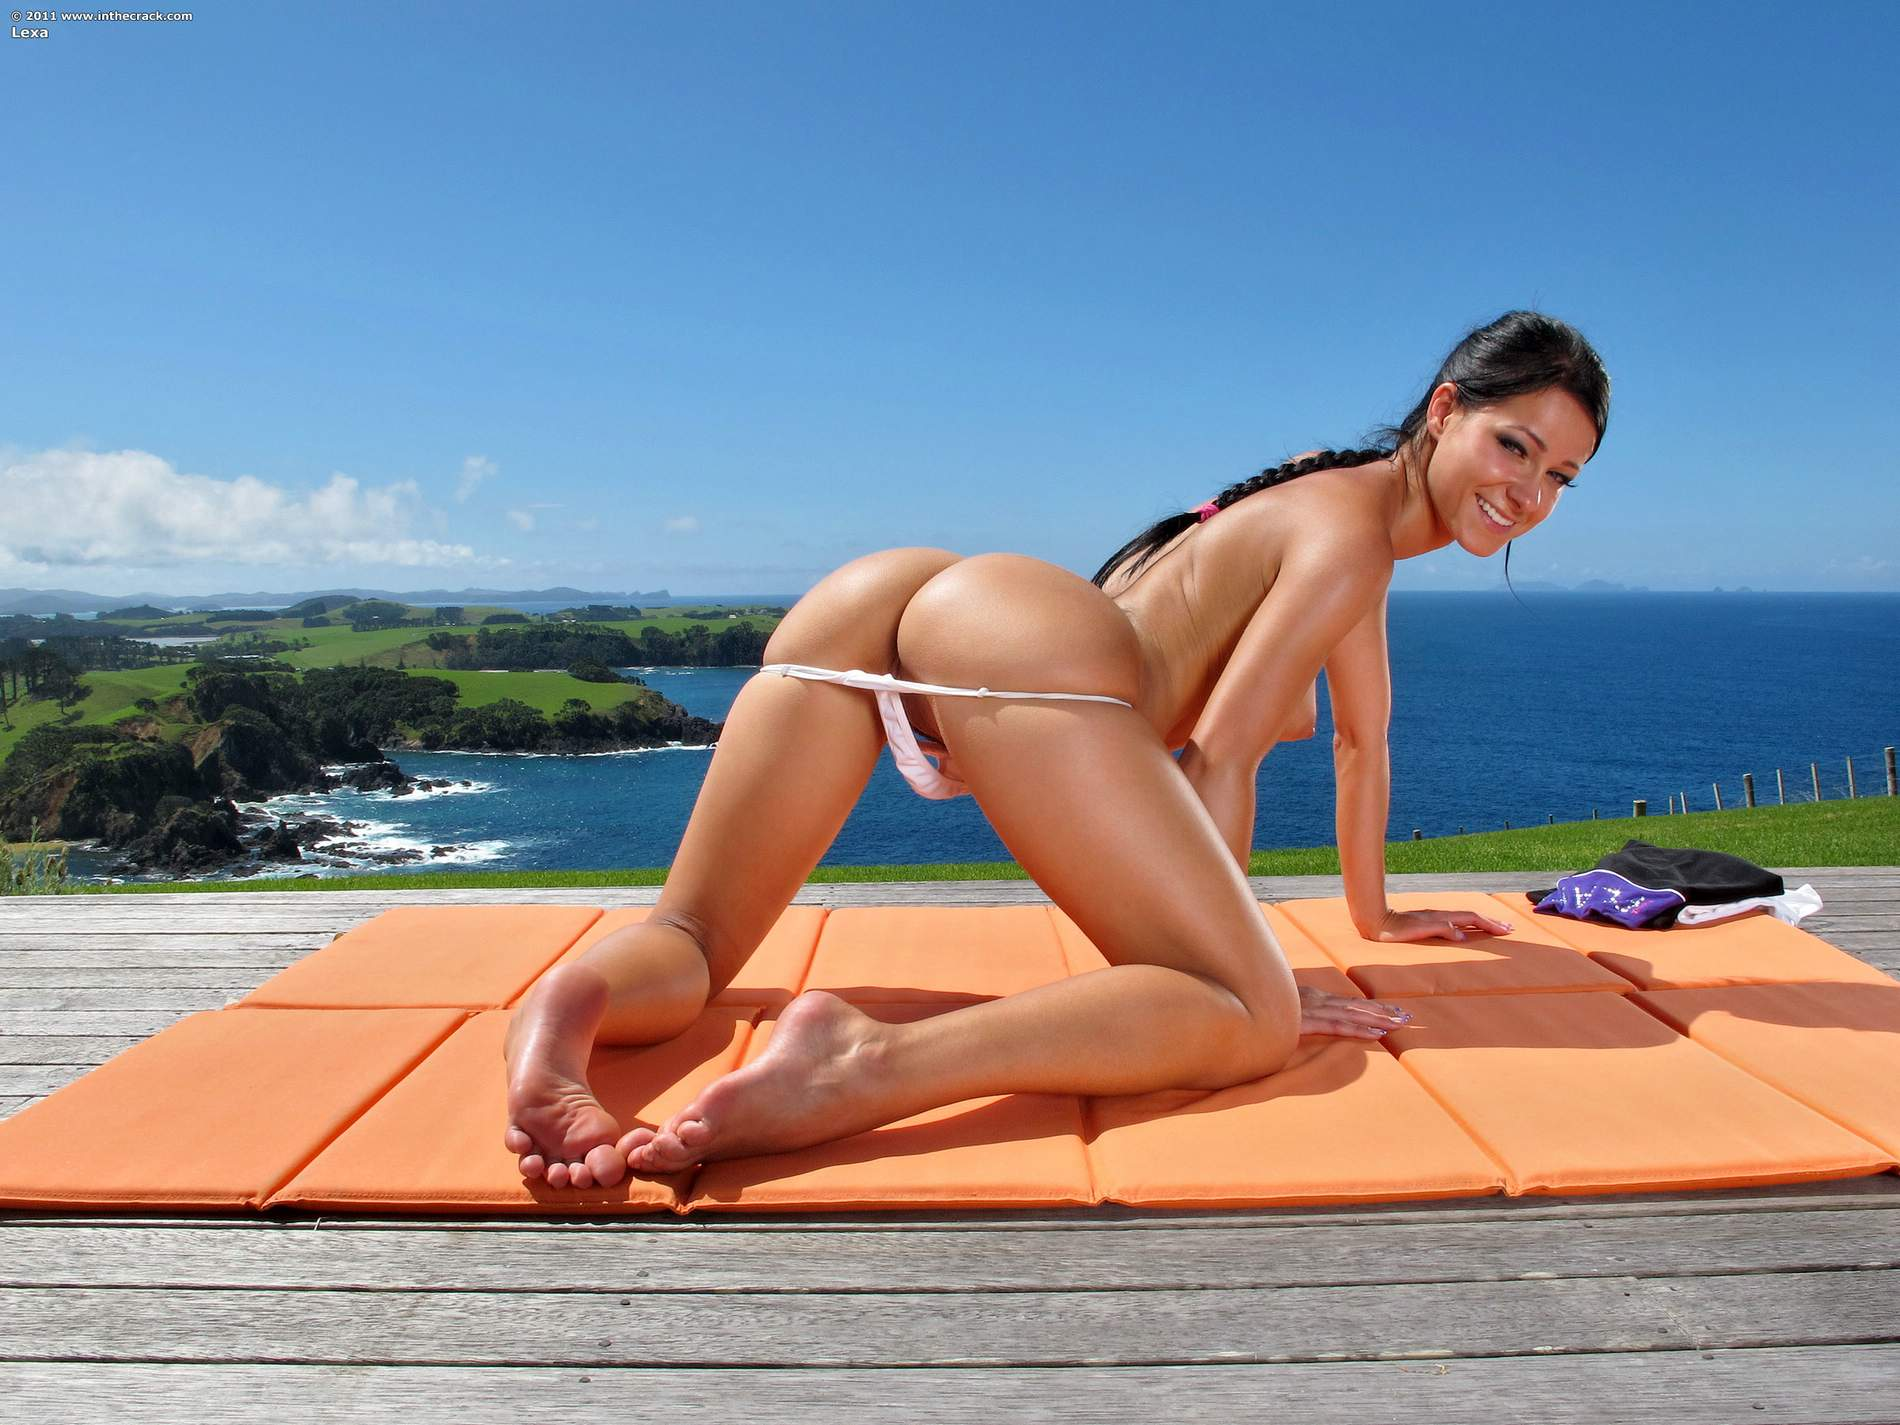 More Www new zeland xxx girls com